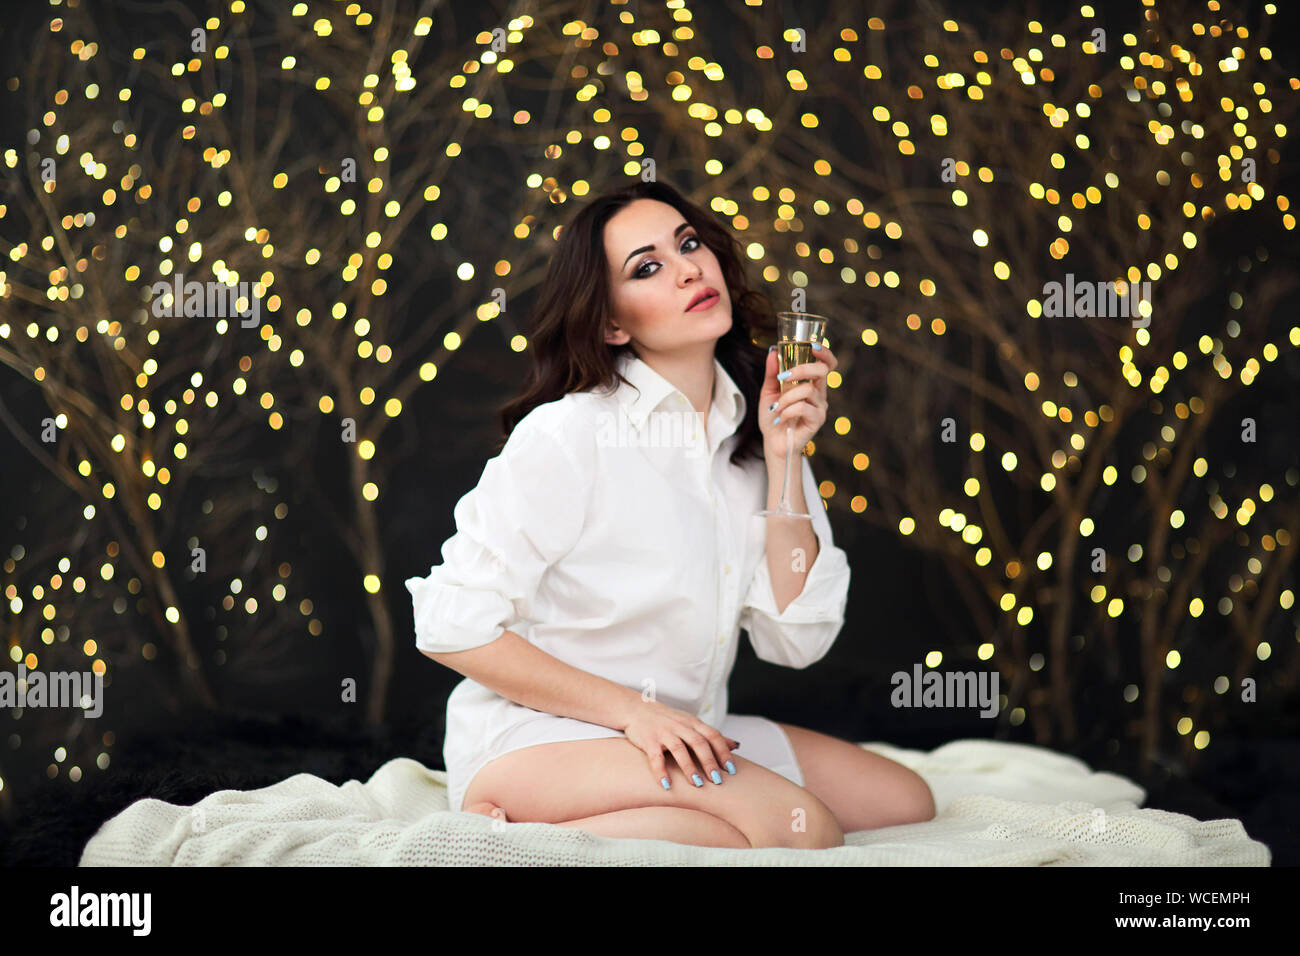 Smiling woman in white shit with glass of champagne over lights background. Party, drinks, holidays, luxury, friendship and celebration concept Stock Photo